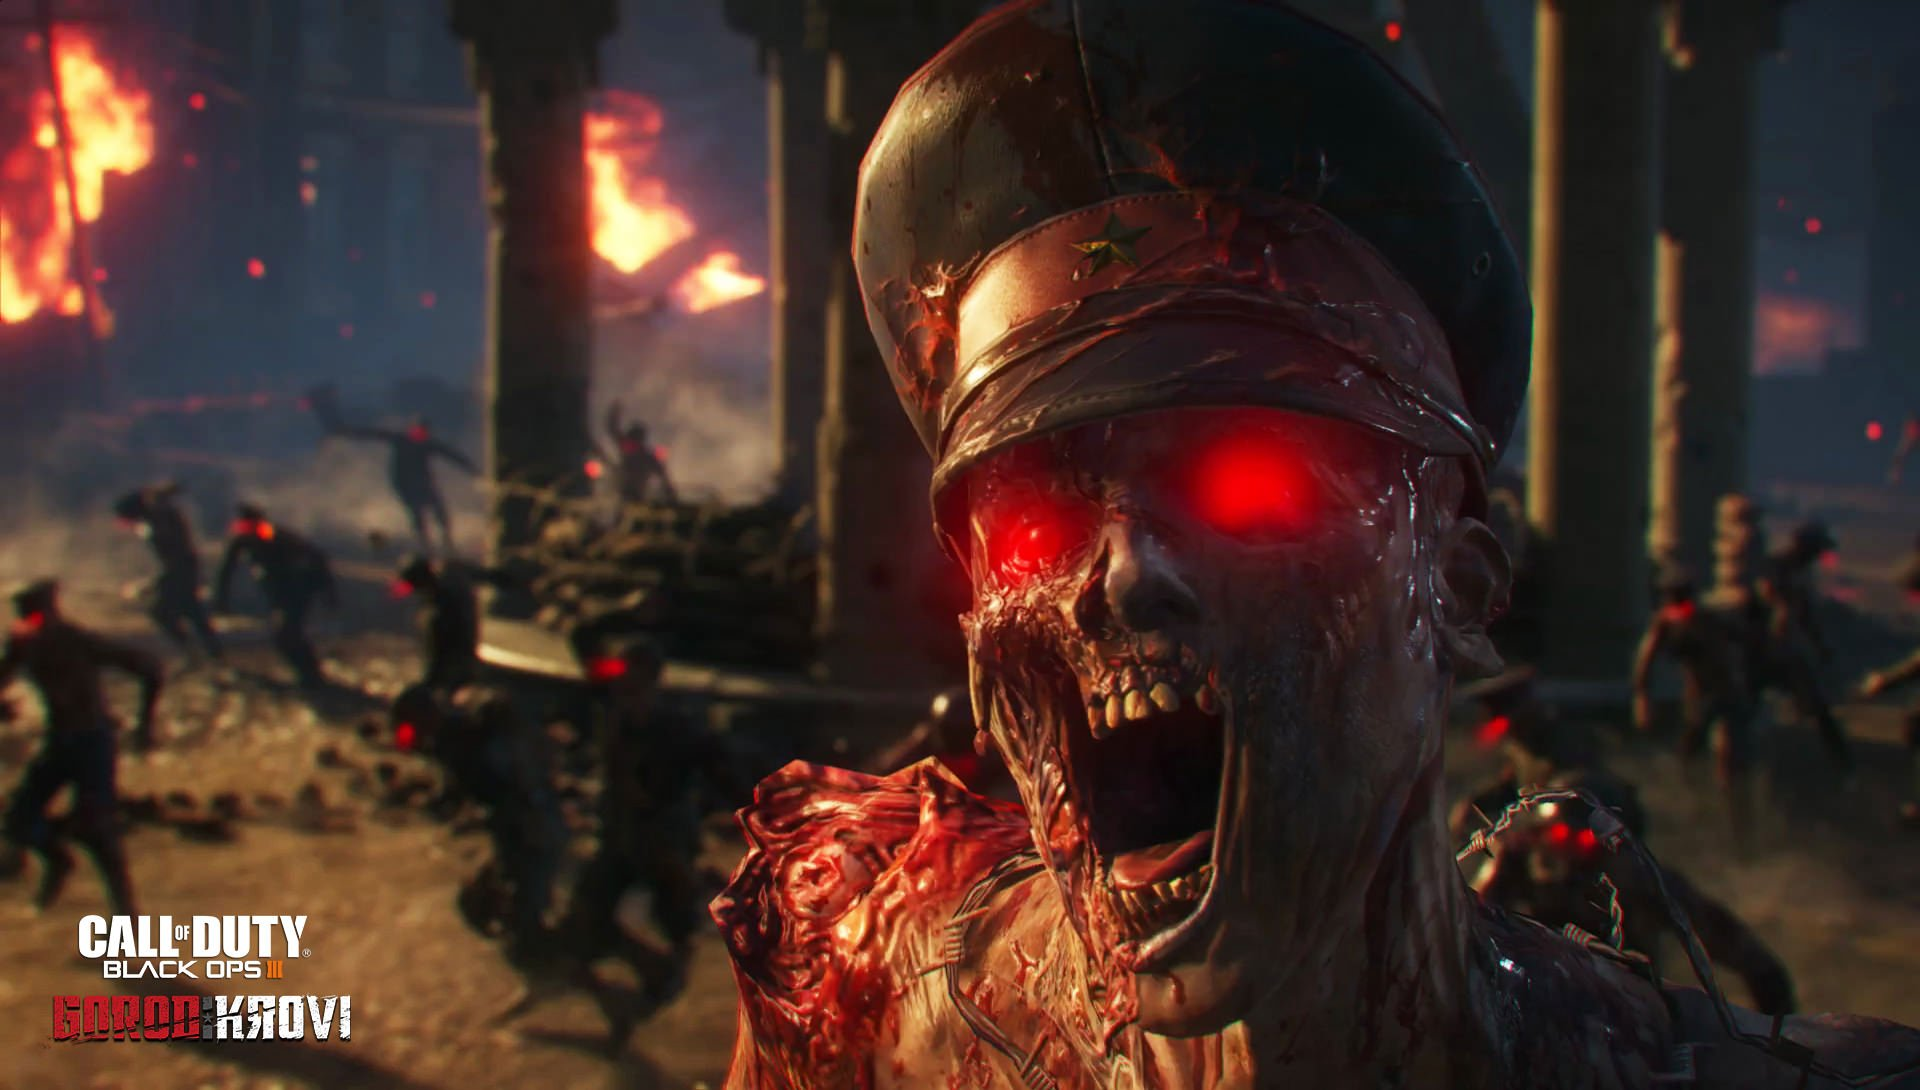 Call Of Duty Black Ops 3 Zombies Dlc Maps Now Available For